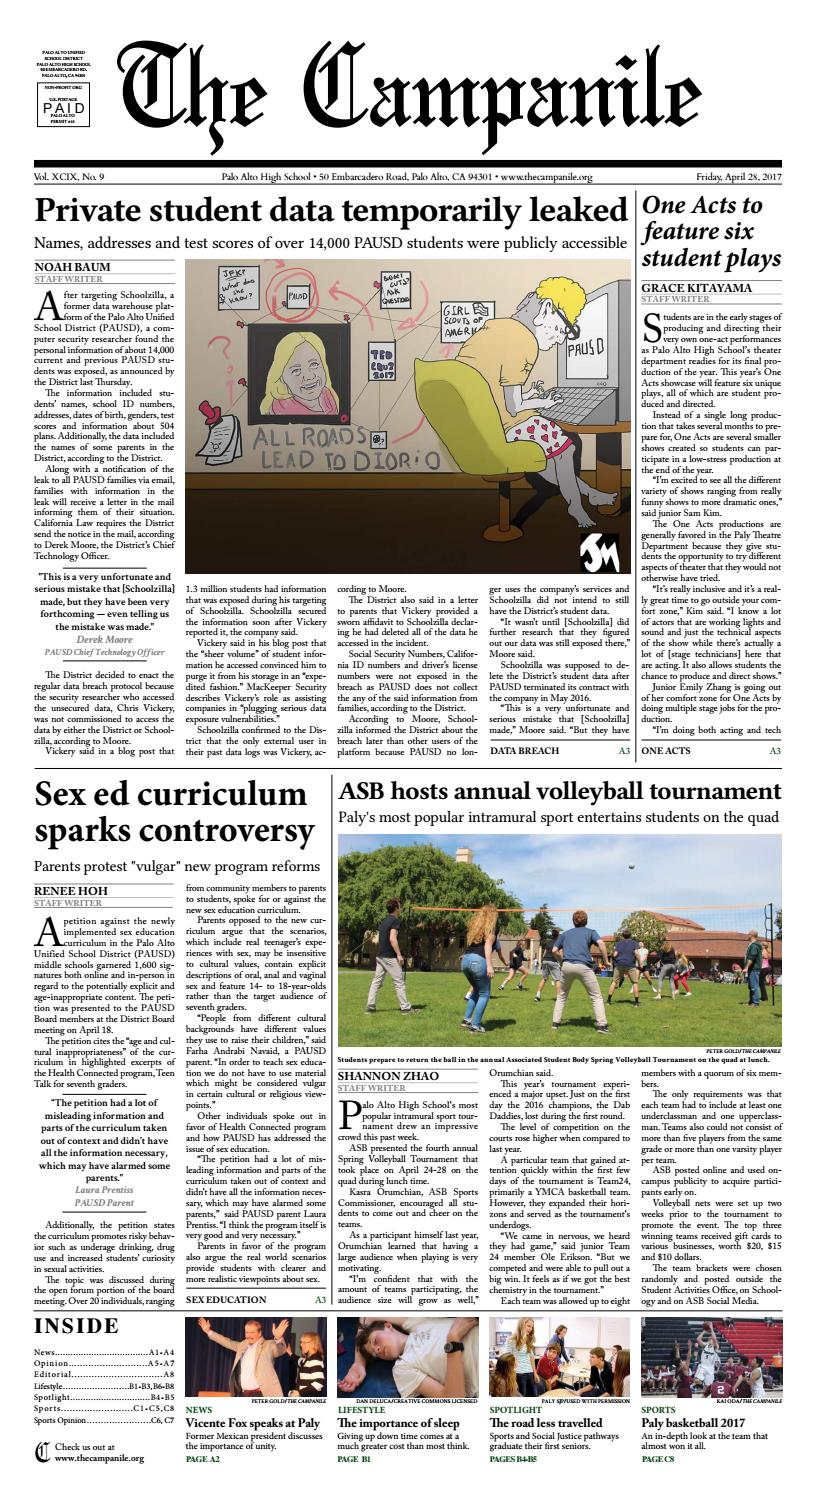 Issue 9, 4/28/2017 by The Campanile - issuu